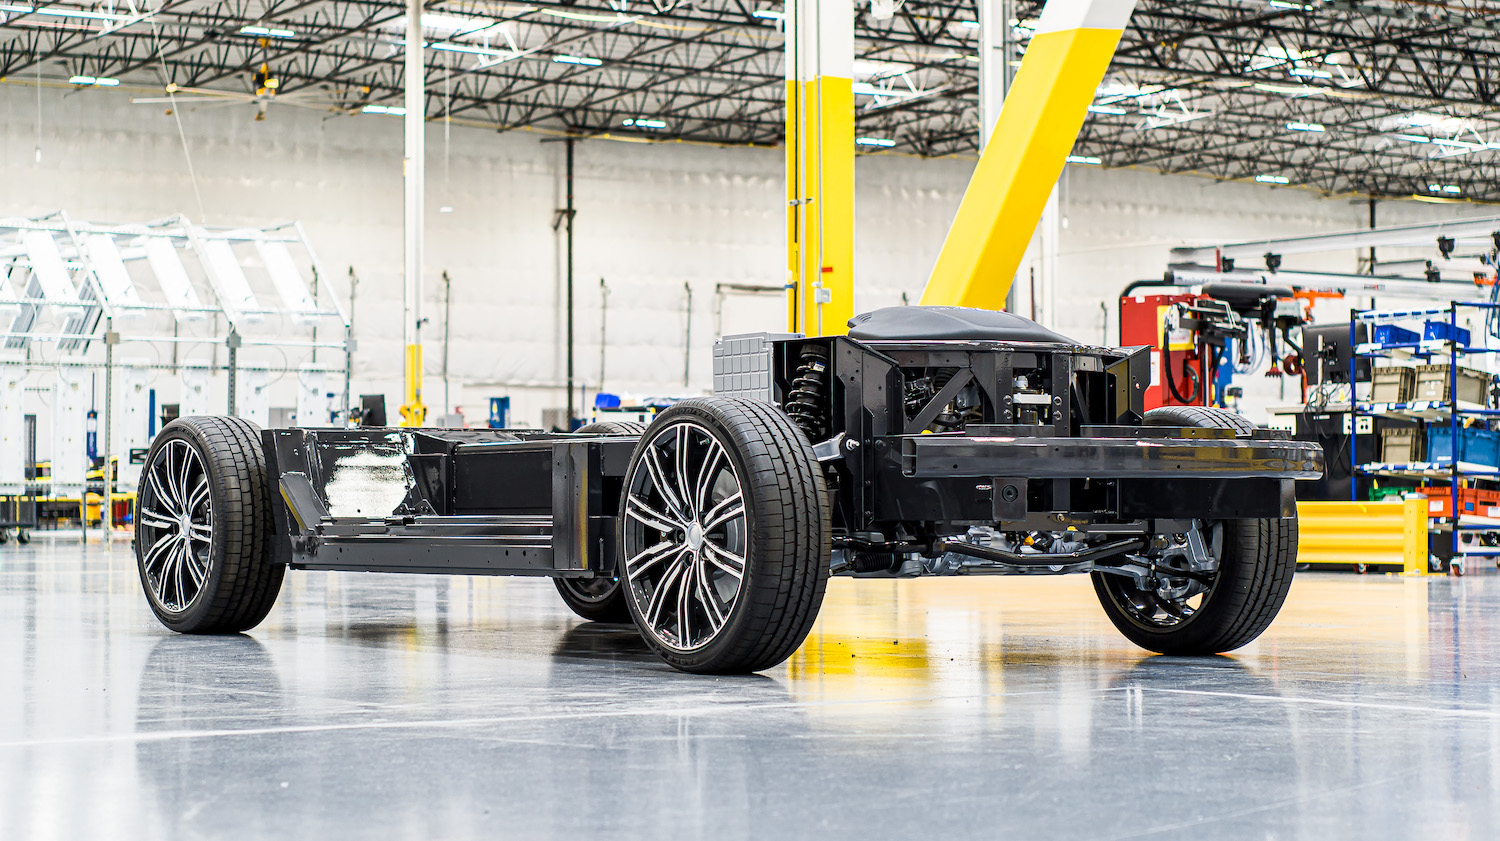 karma car chassis in factory